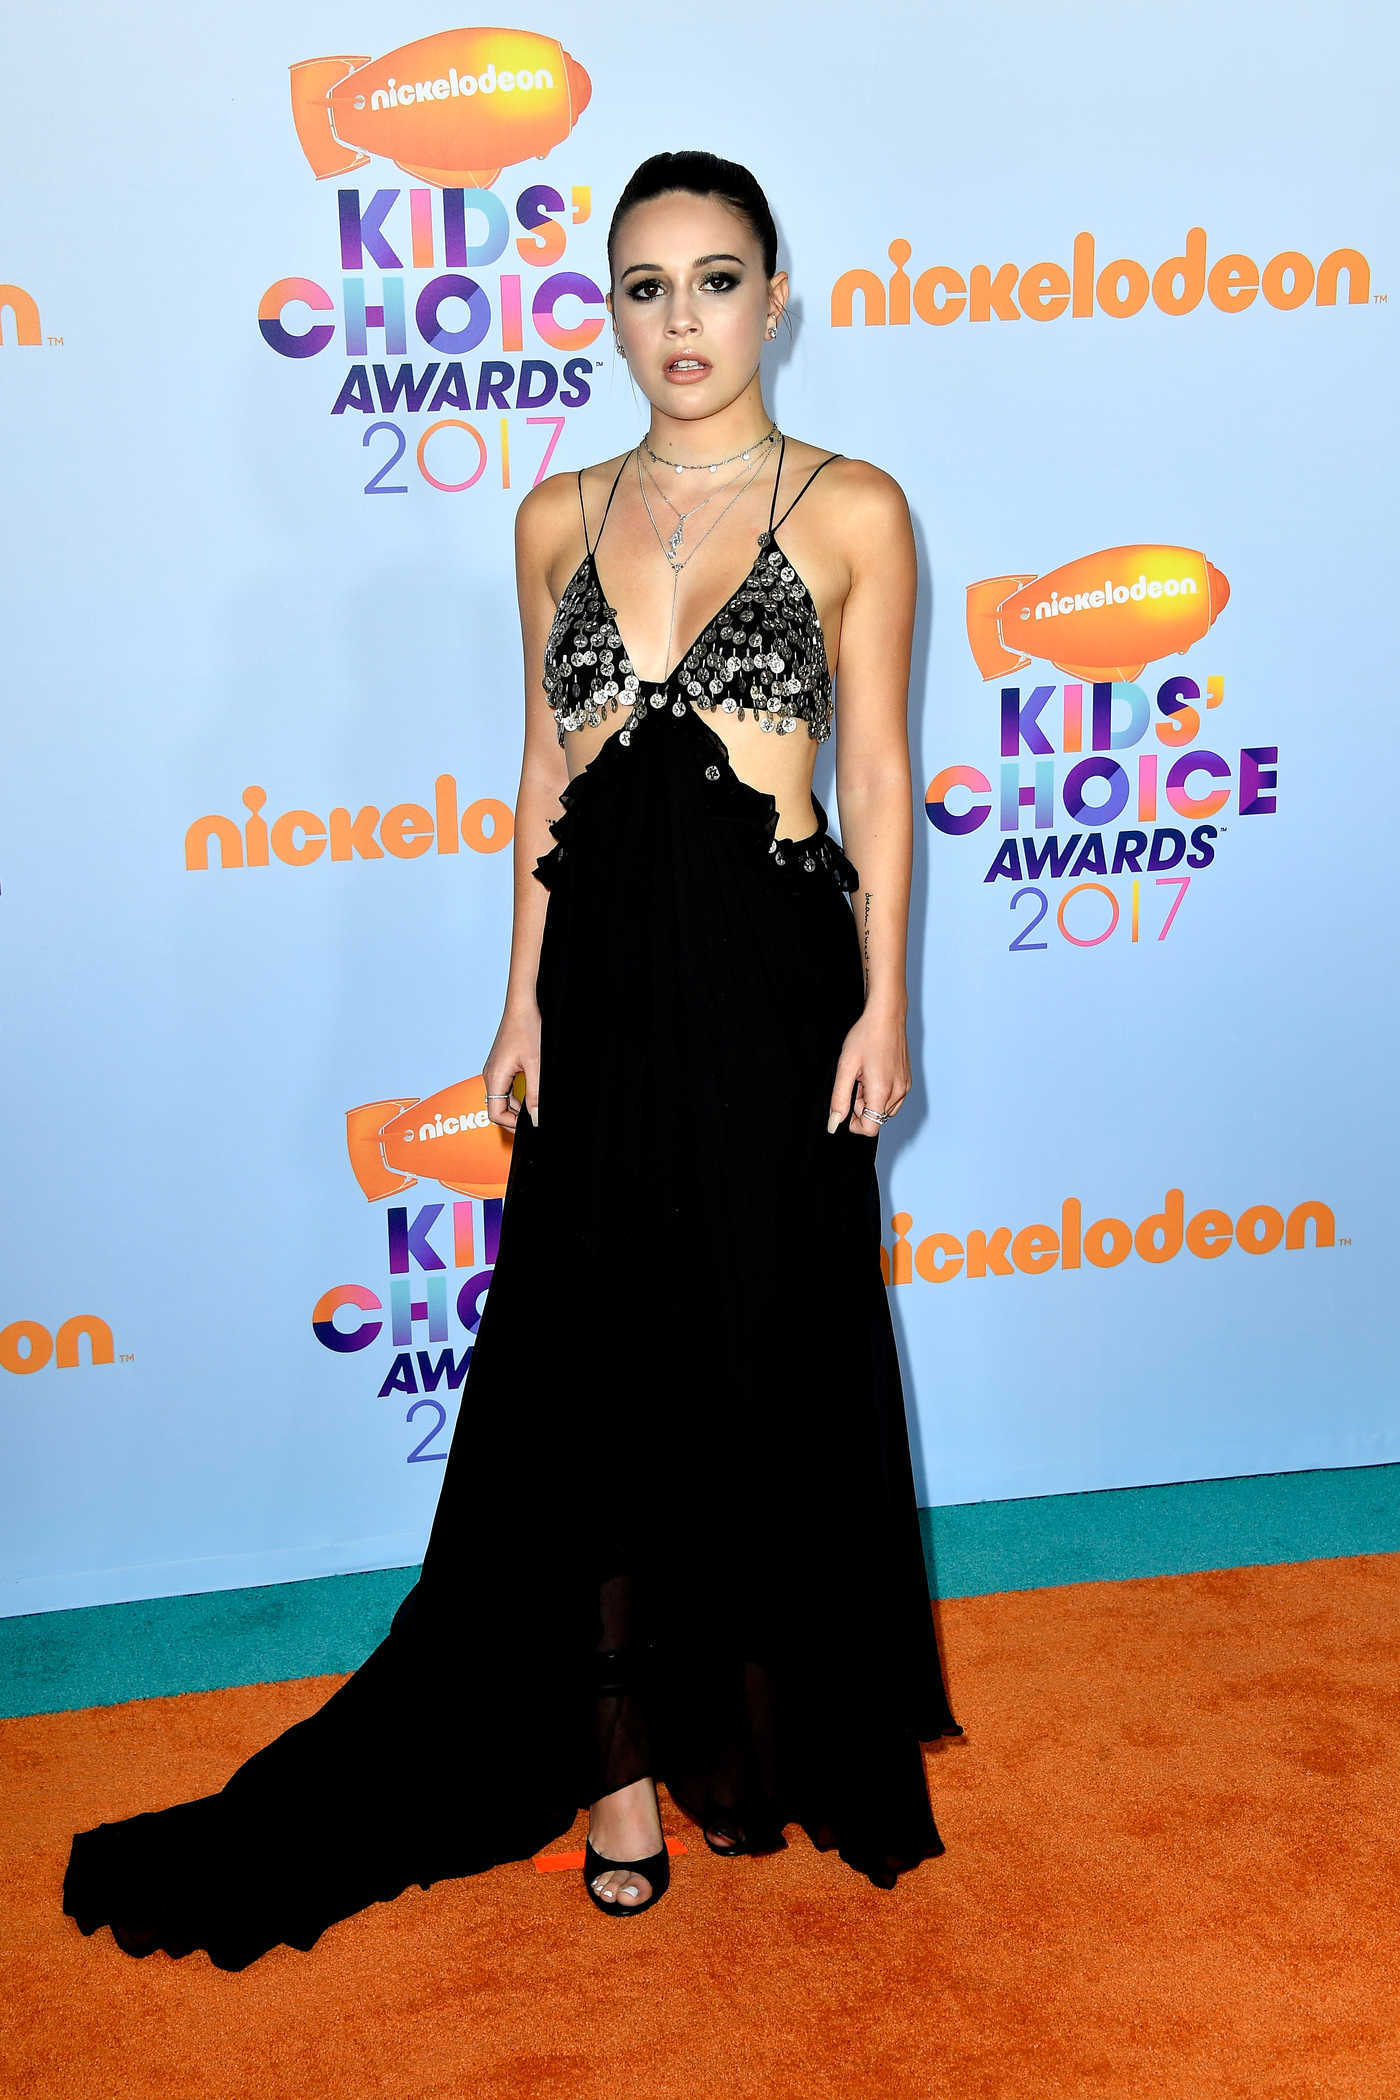 Bea Miller at the 2017 Nickelodeon Kids' Choice Awards in Los Angeles 03/11/2017